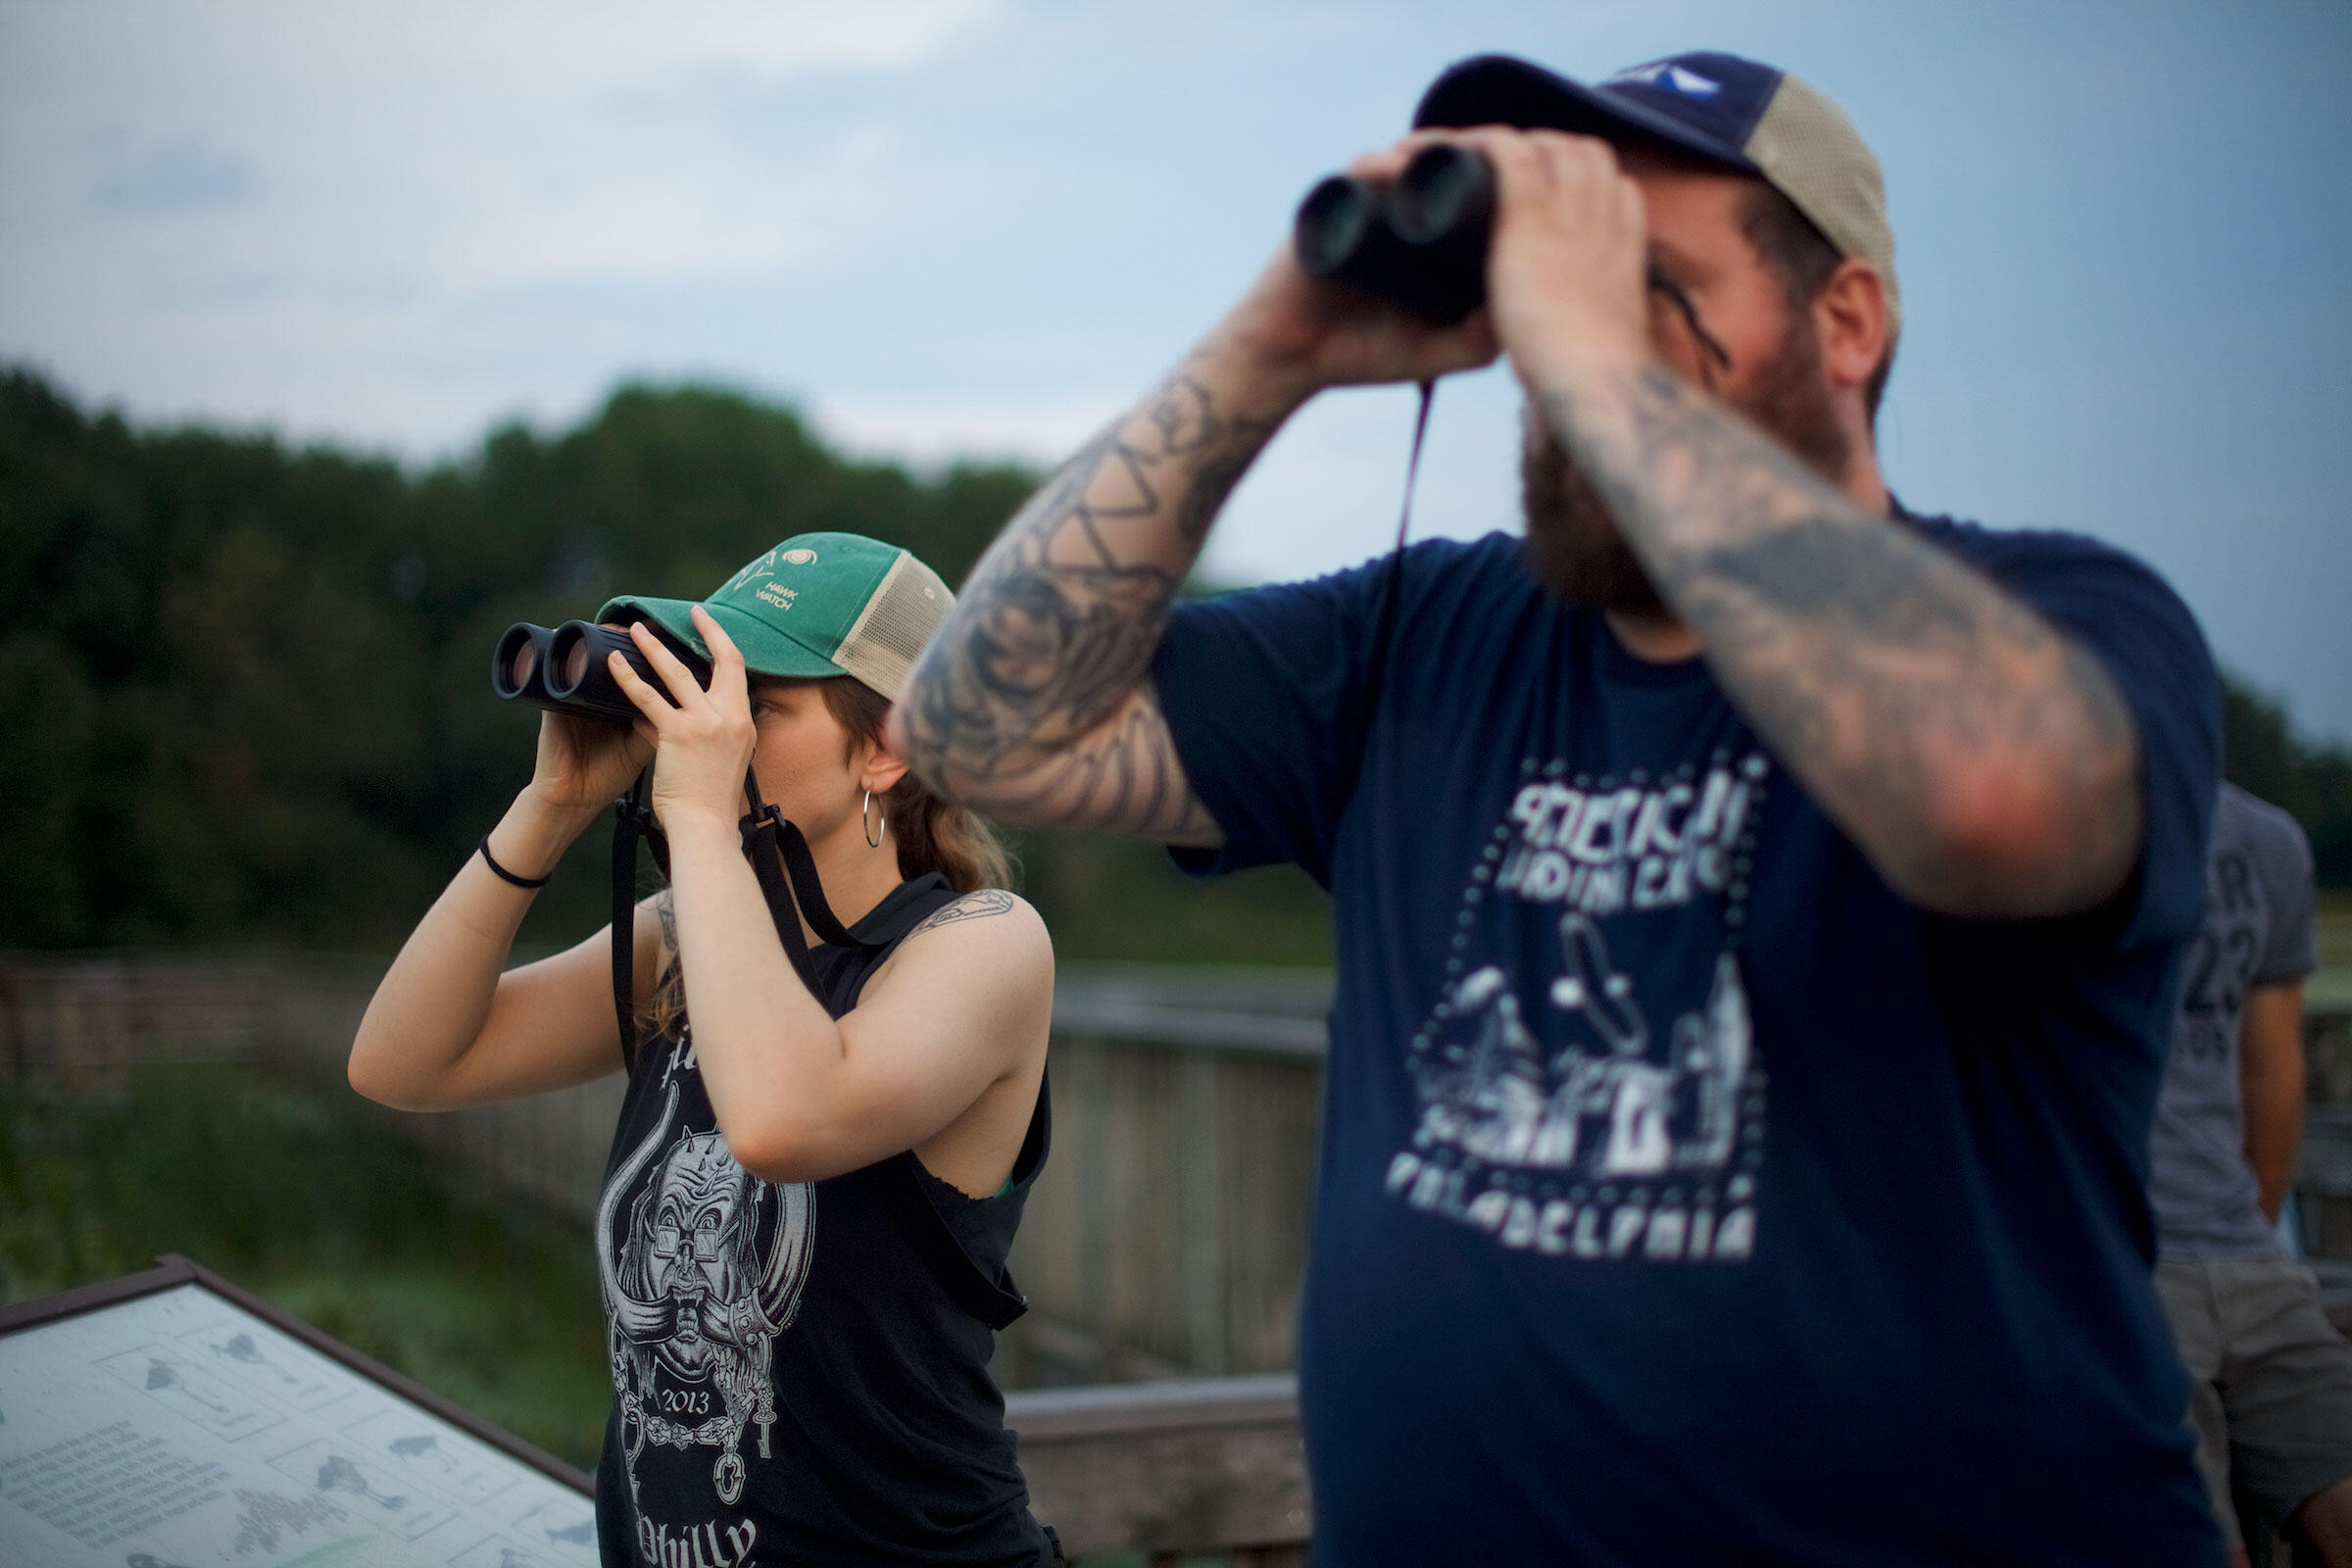 Caleb Hunt (left) and Tony Croasdale at the John Heinz National Wildlife Refuge at Tinicum in Philadelphia. In a city known for its punk underground and avian history, the friends have found an overlap that celebrates both niches. Mark Makela